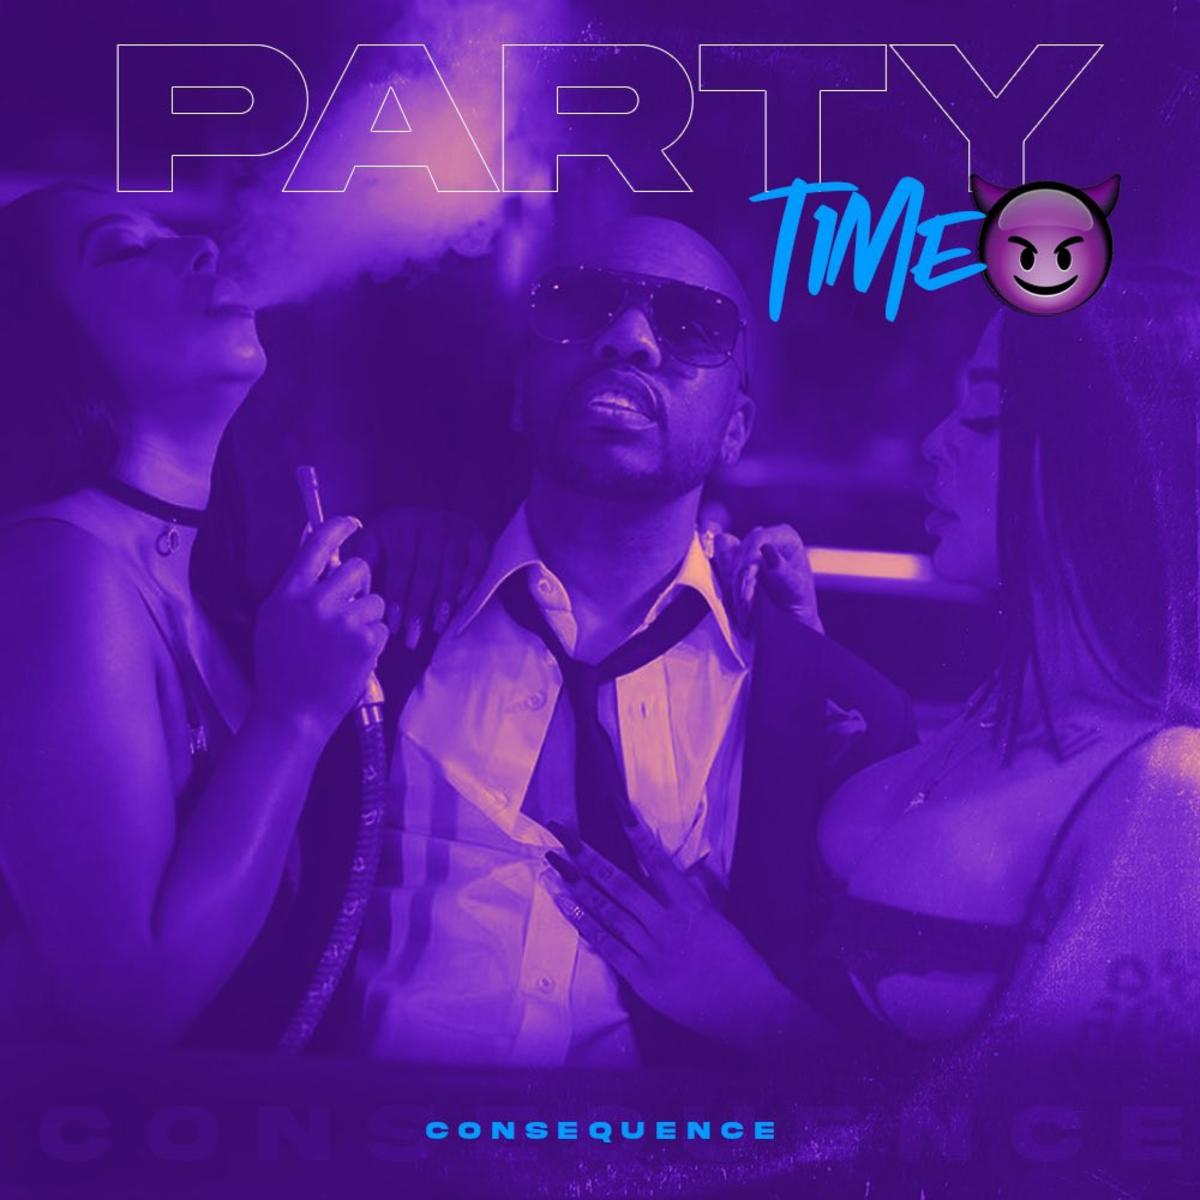 Consequence Party Time (Drake Diss) Mp3 Download